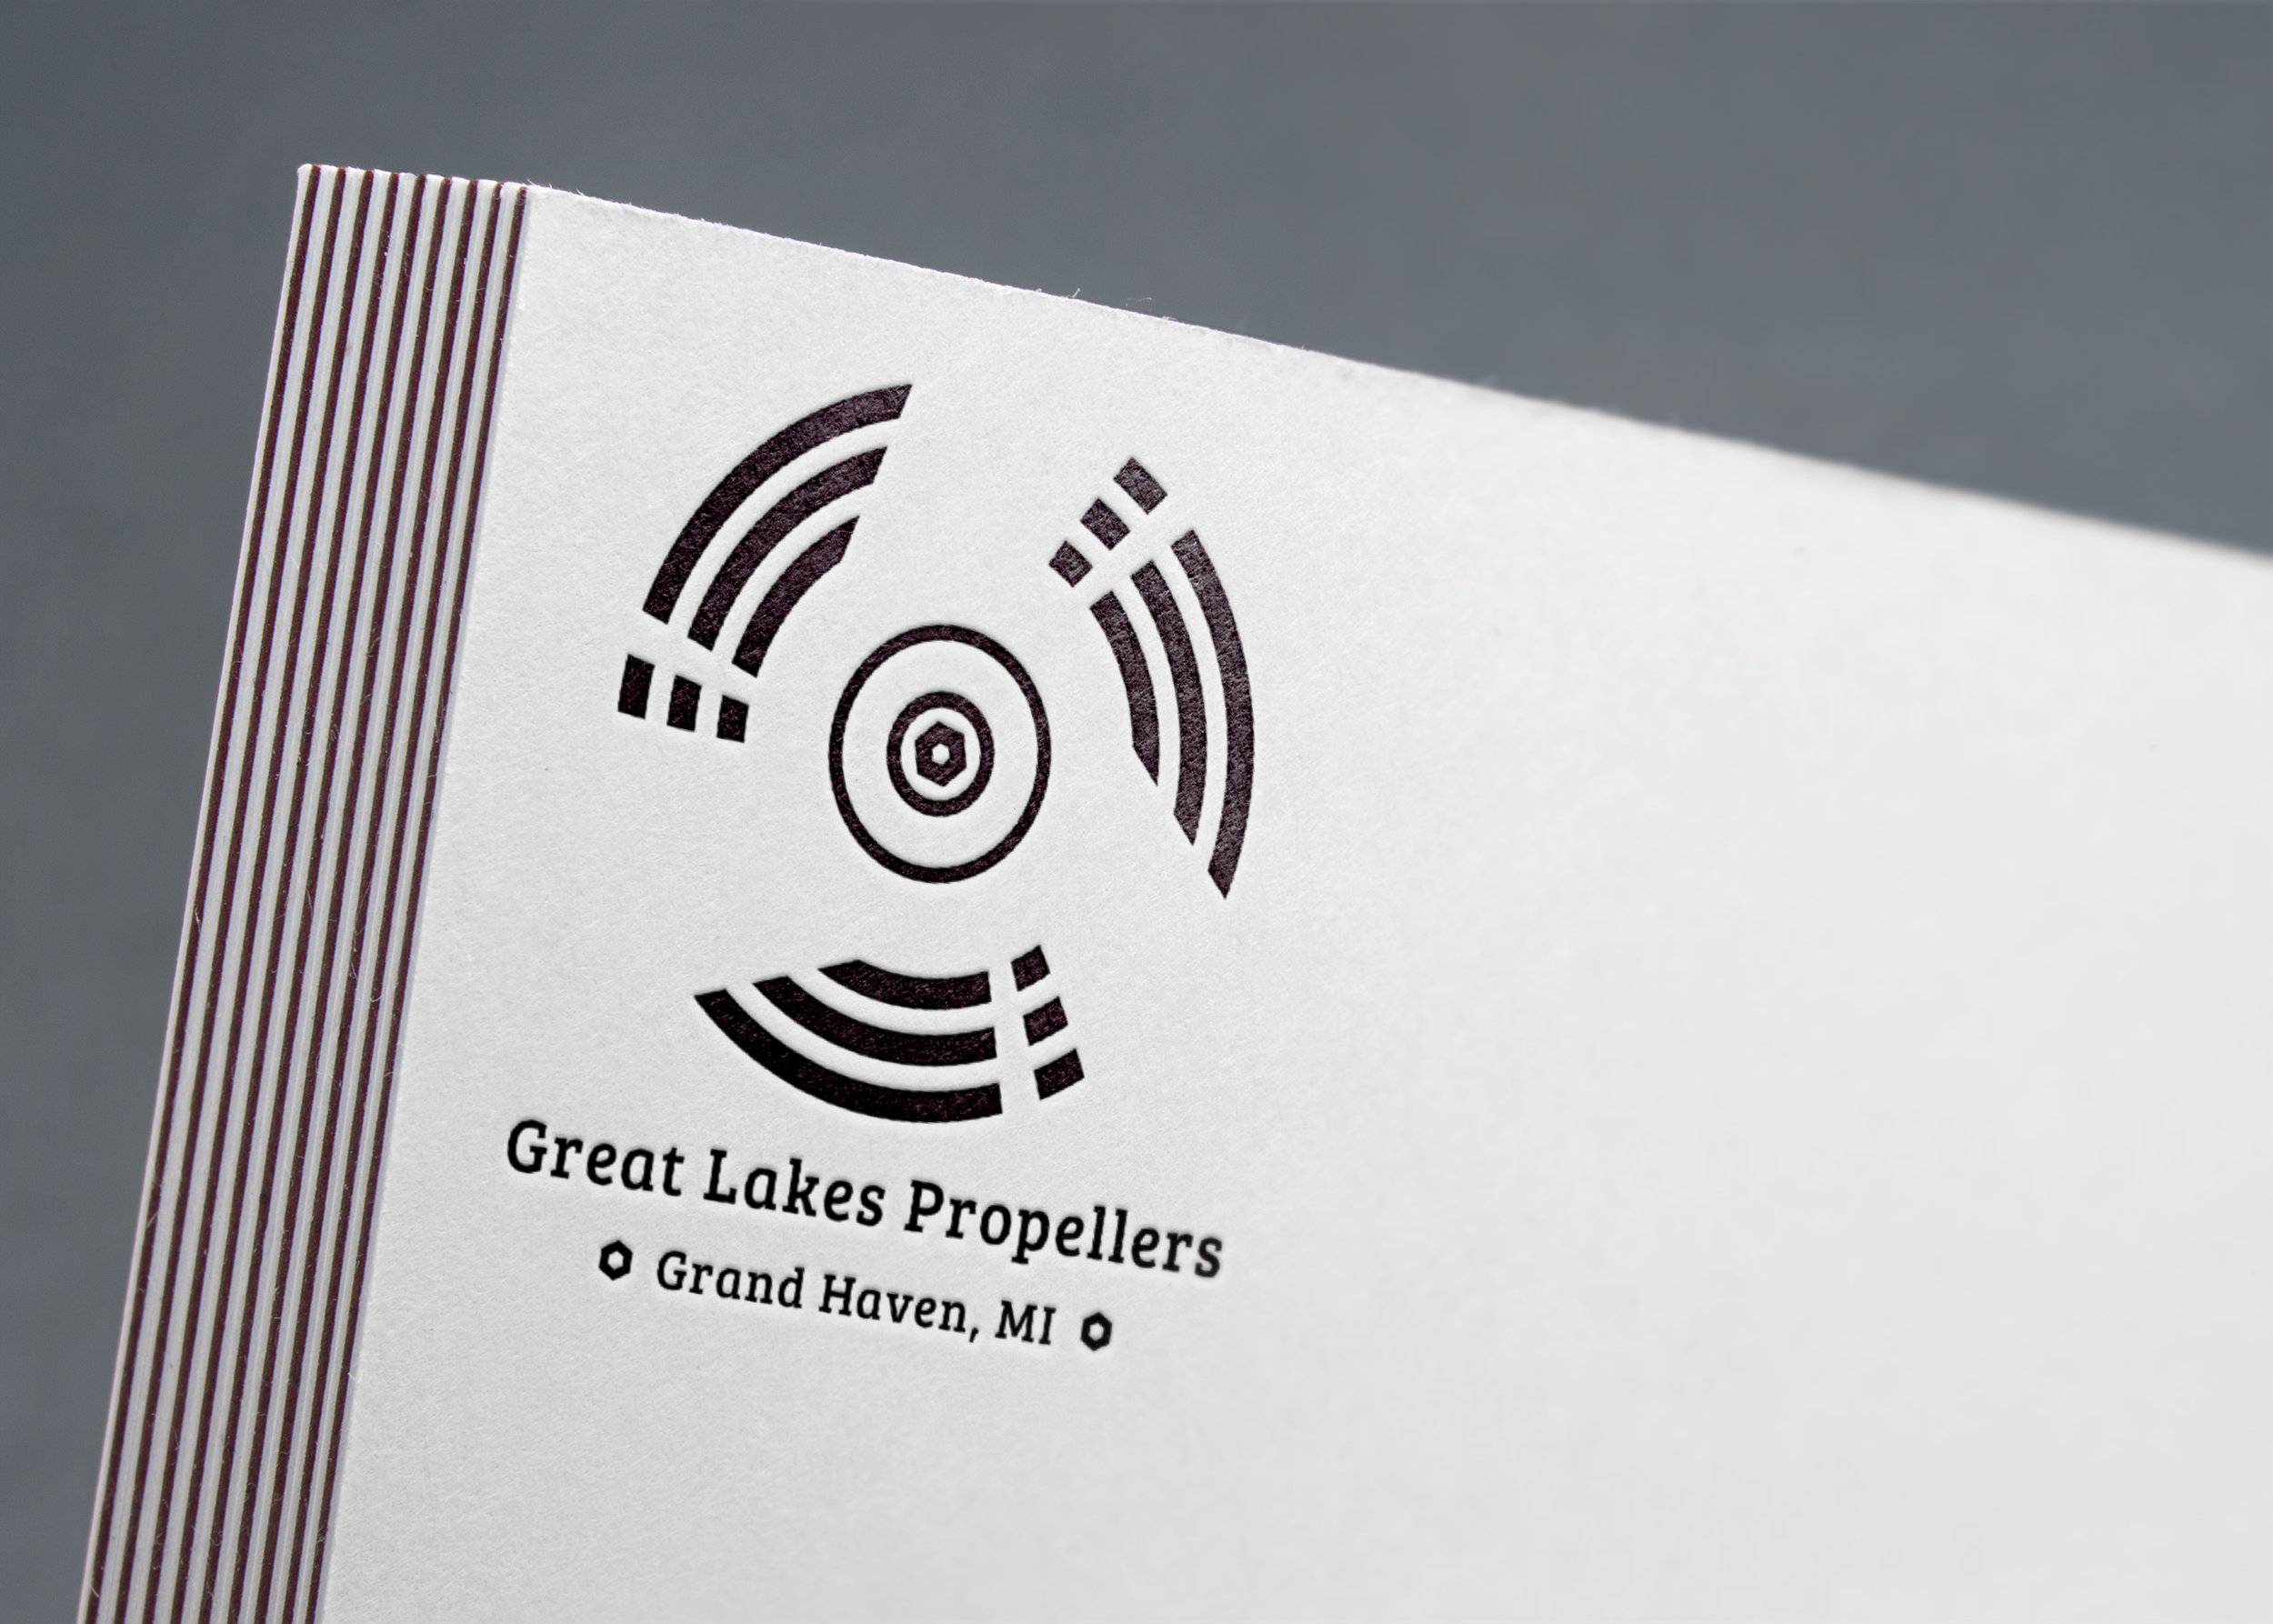 Great Lakes Propellers